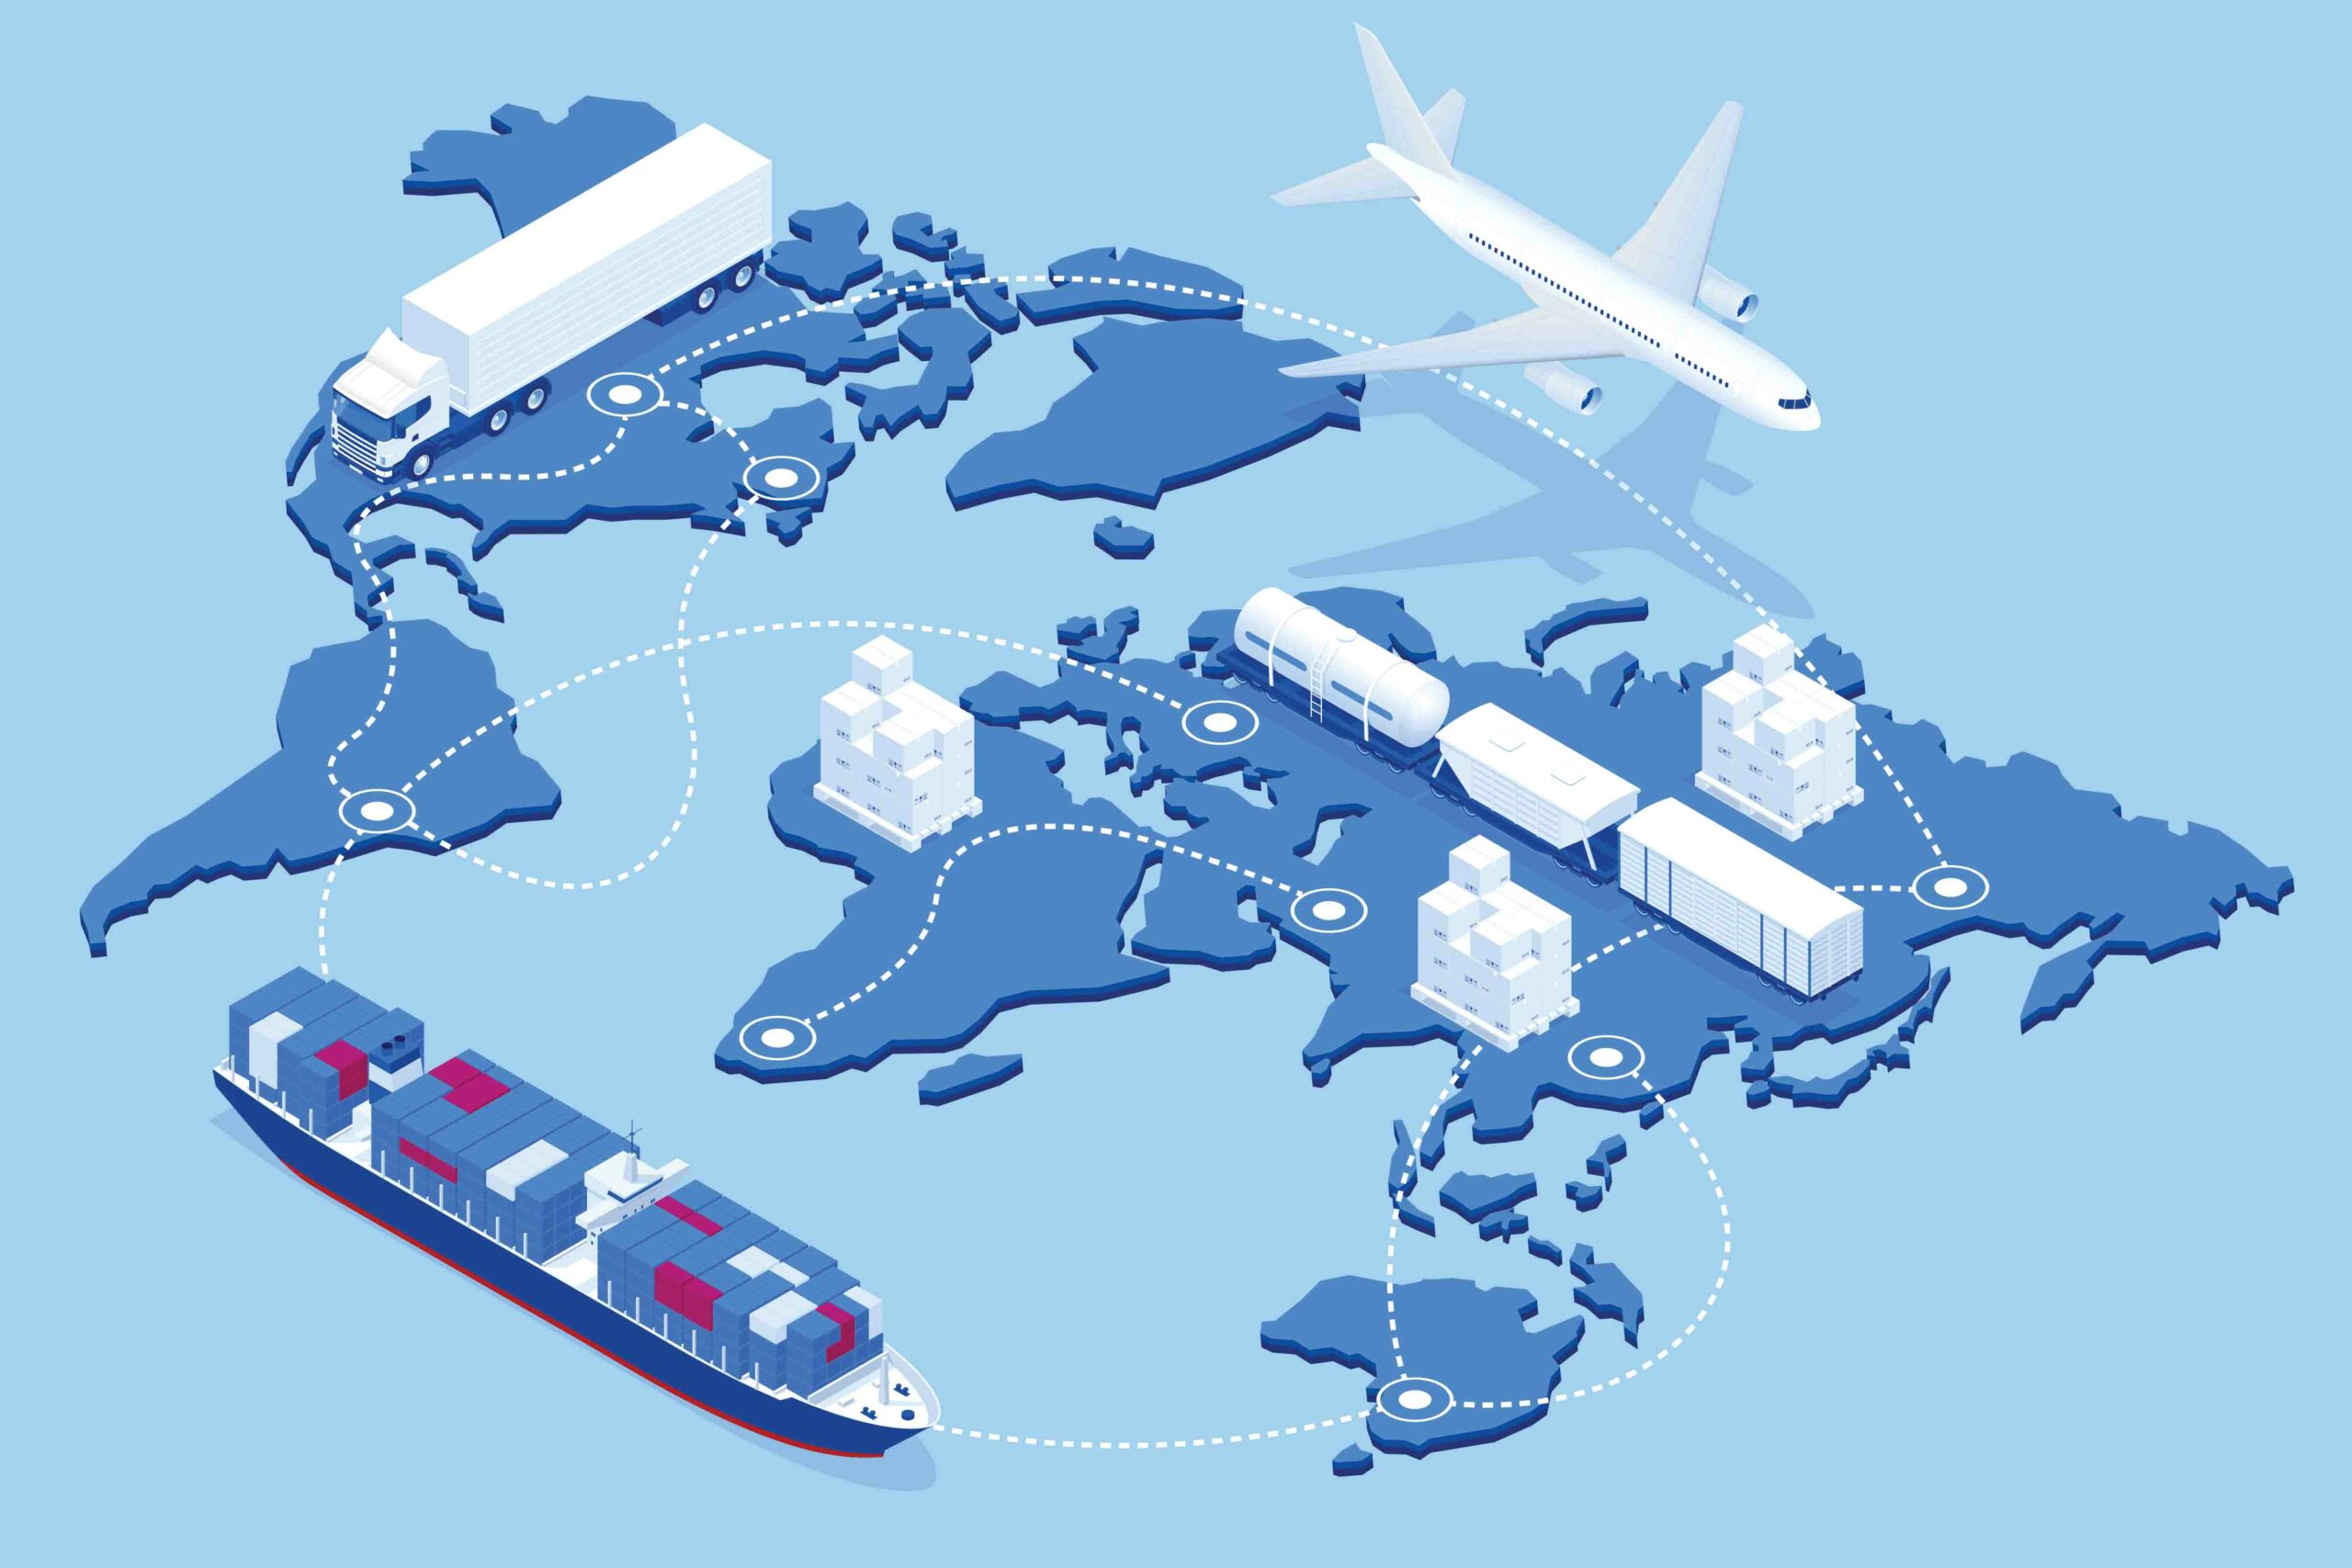 Supply Chain Problems : Normal Demand, Not More Regulation, what's next ? Apollo Cargo Alliance